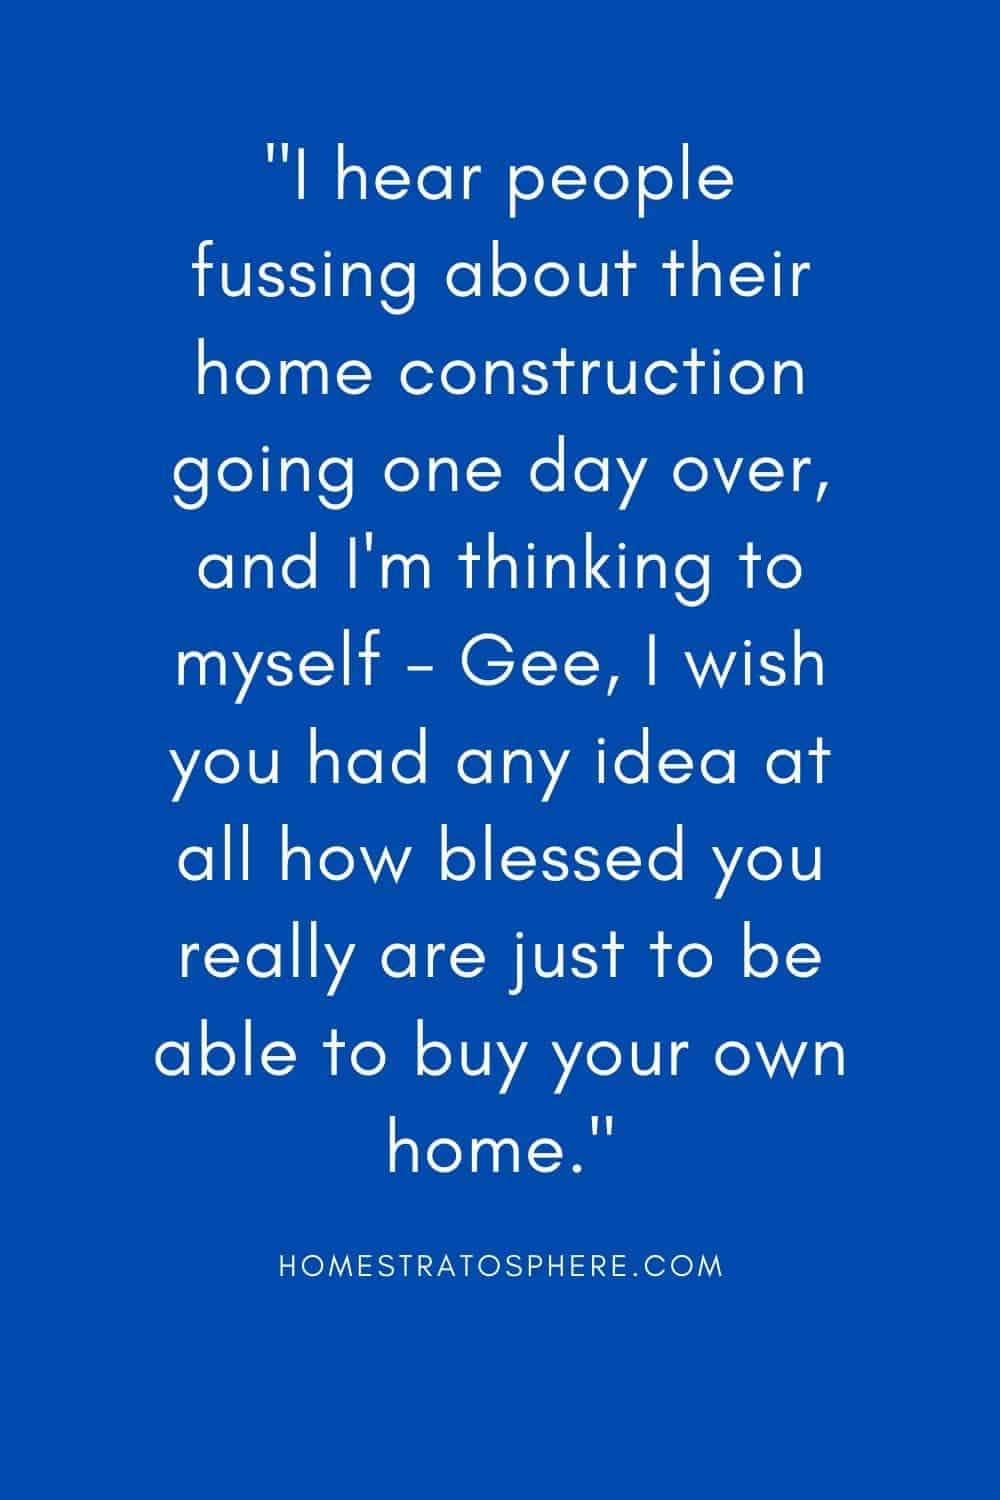 """I hear people fussing about their home construction going one day over, and I'm thinking to myself - Gee, I wish you had any idea at all how blessed you really are just to be able to buy your own home."""